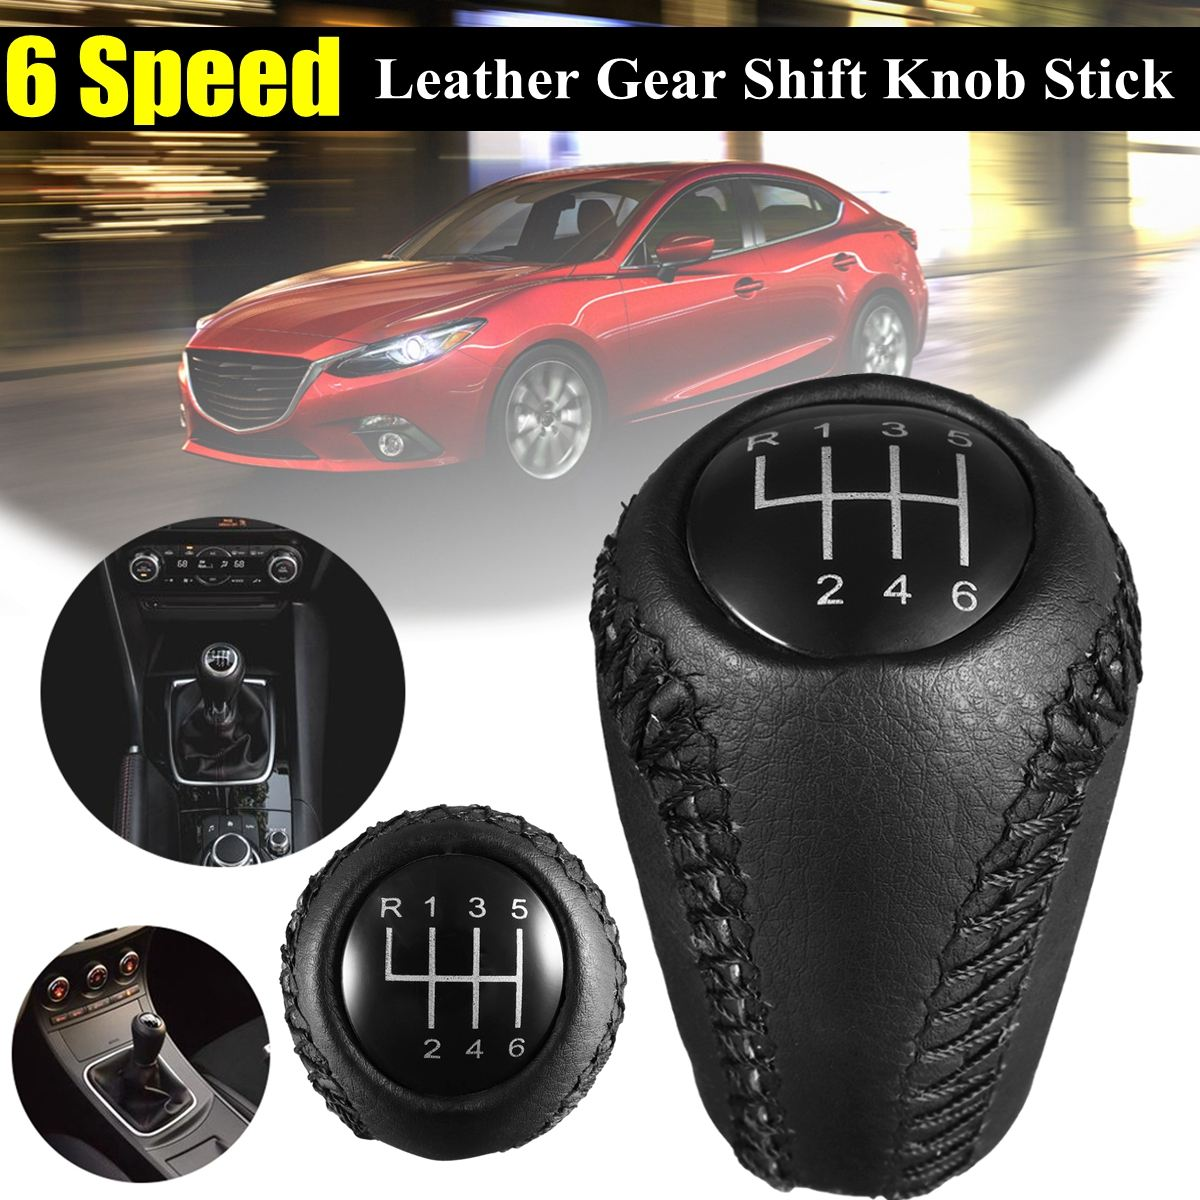 US $8 35 37% OFF|6 Speed Leather Gear Knob Stick Shift For Mazda 3 BK BL 5  CR CW 6 II GH CX 7 ER MX 5 NC III 2005 2006 2007 2008 2009 2010 2011-in